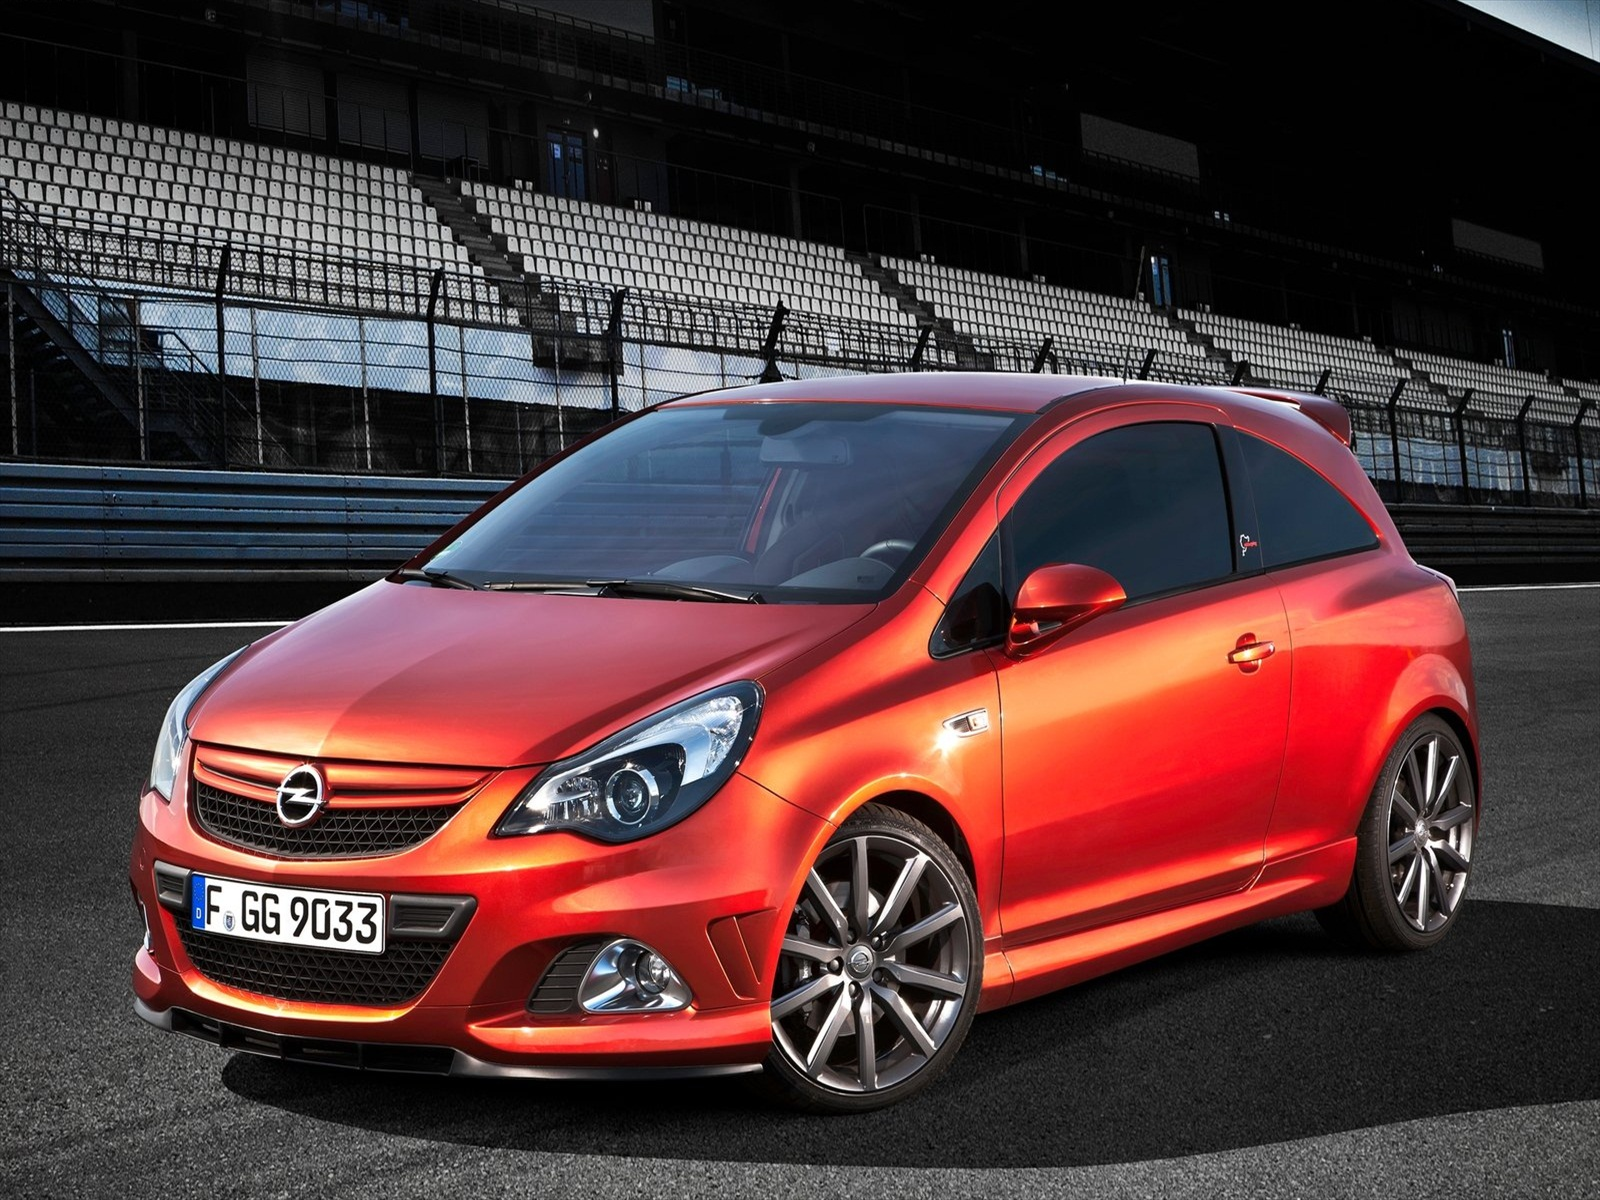 car pictures opel corsa opc nurburgring edition 2011. Black Bedroom Furniture Sets. Home Design Ideas